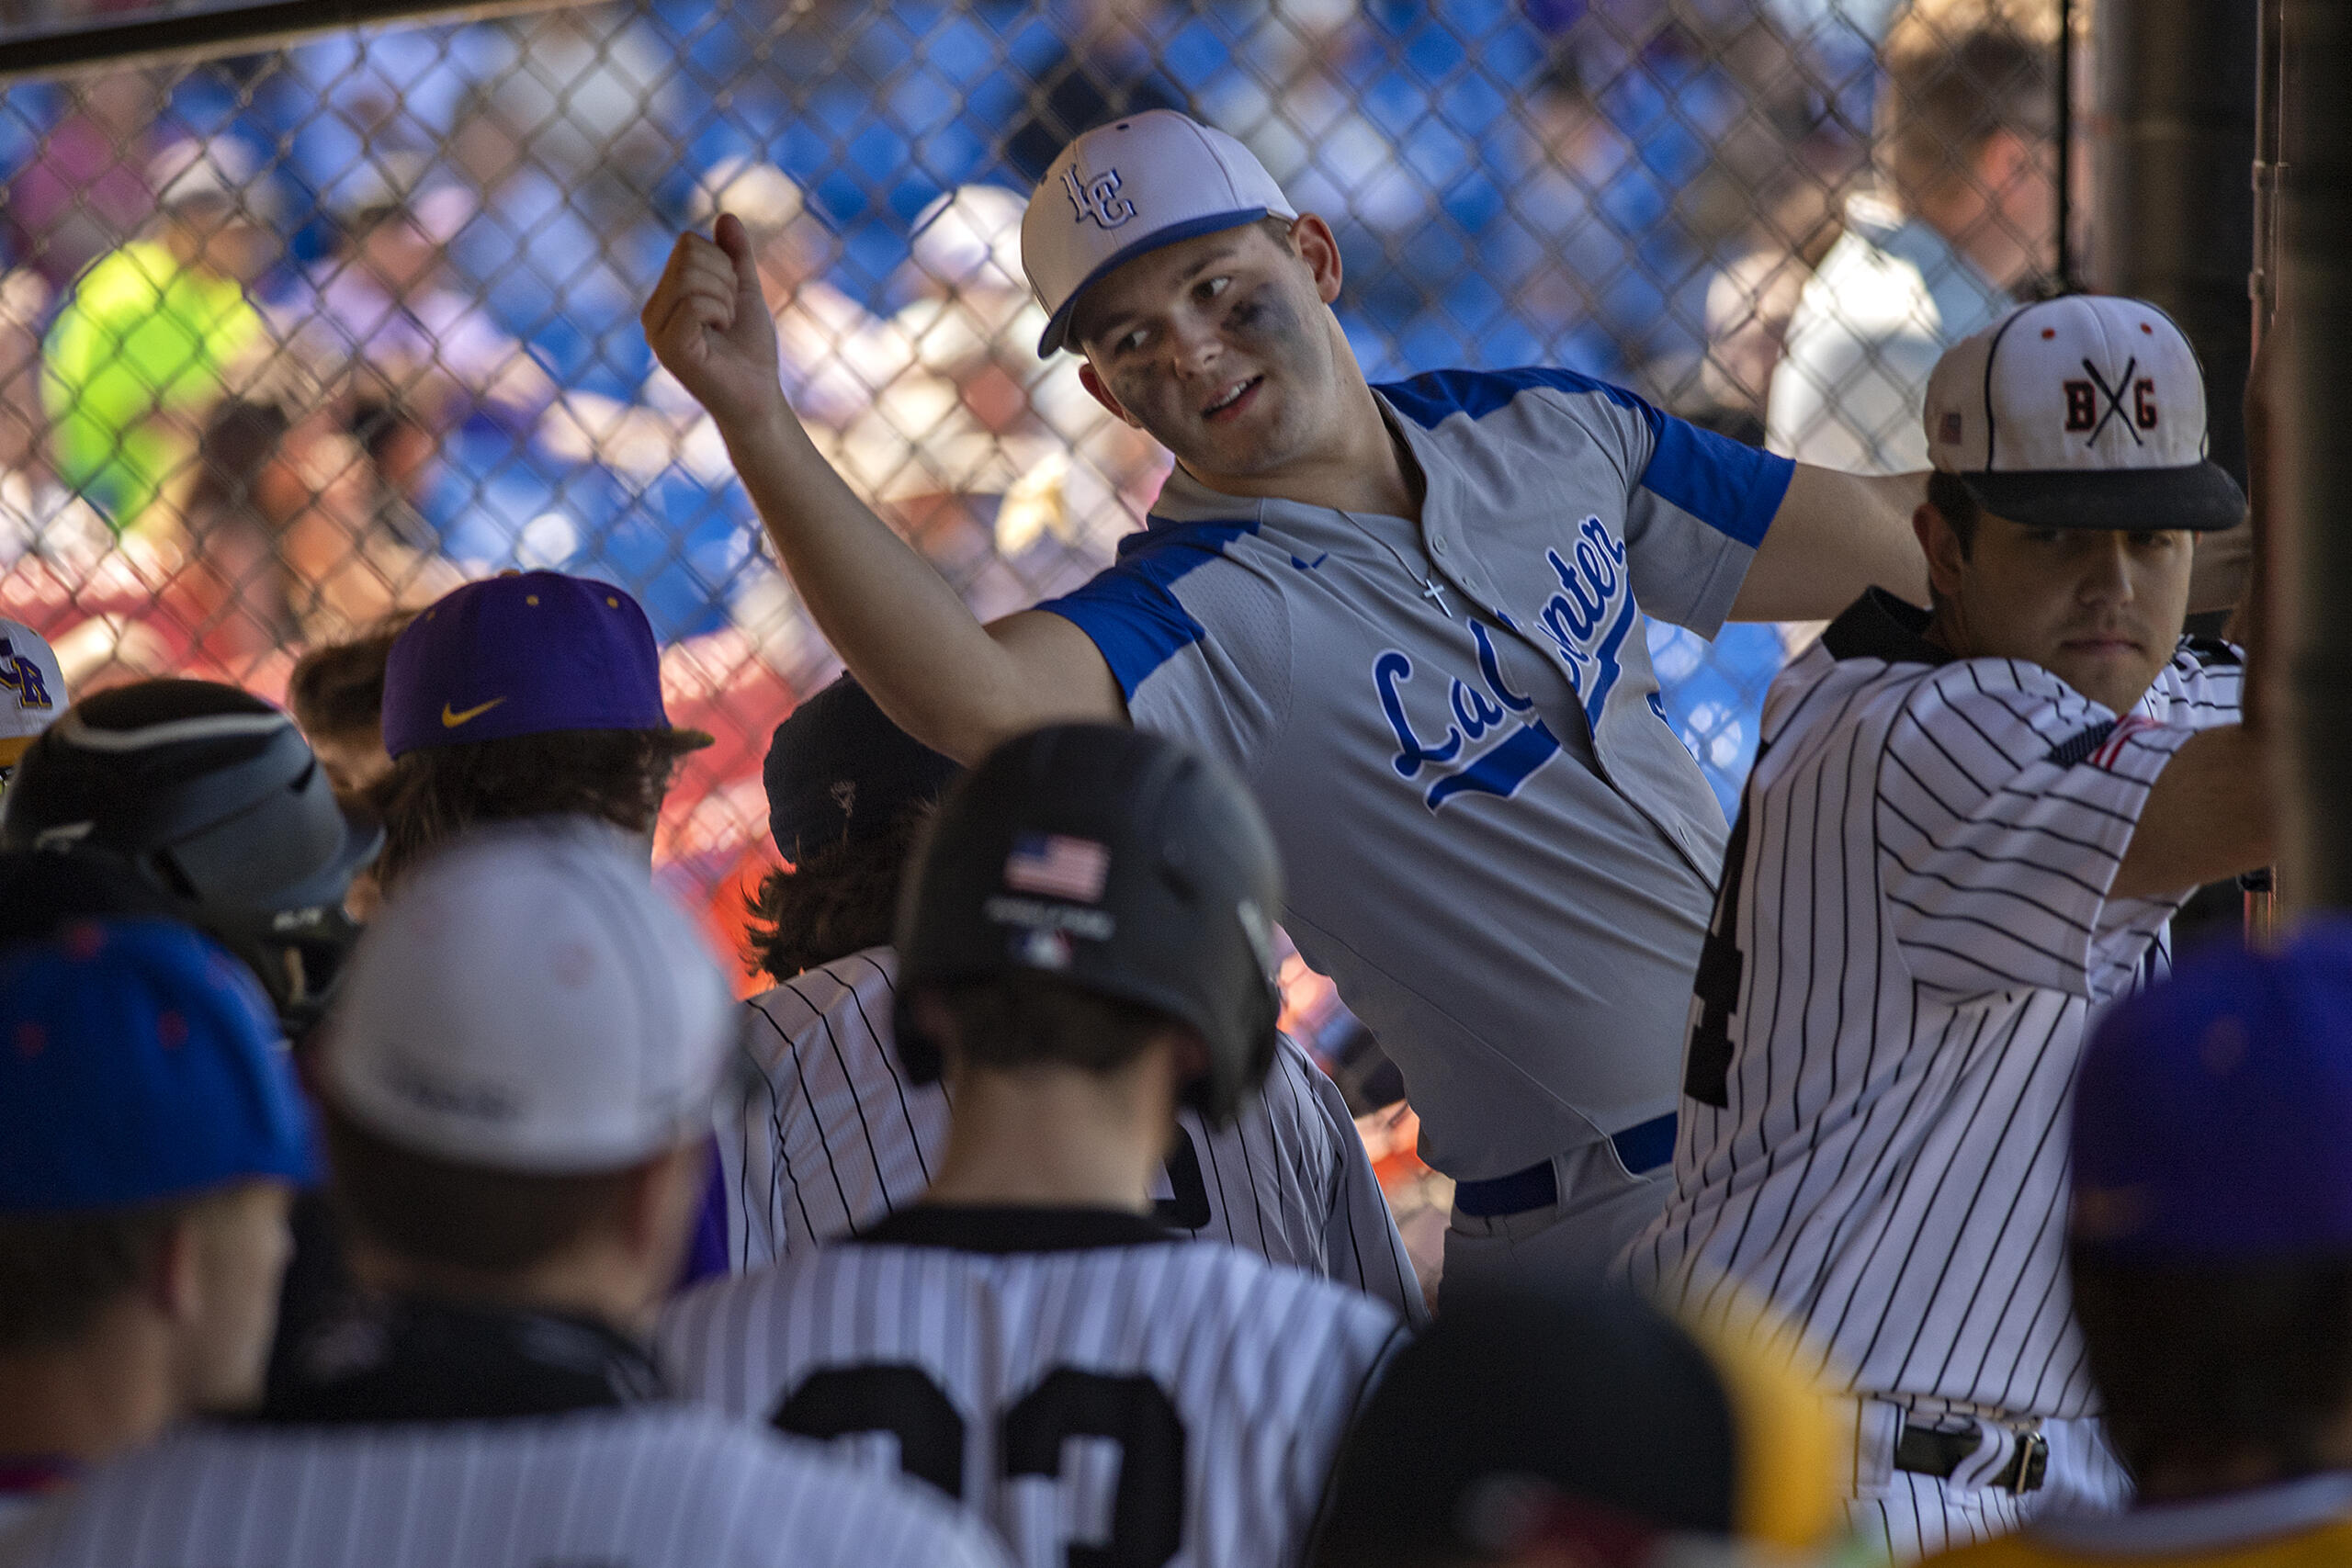 La Center's Tom Lambert, facing, stretches to congratulate an American League teammate after they scored in the first inning during the Senior All-Star Game at Ridgefield Outdoor Recreation Center on Wednesday afternoon, June 16, 2021.